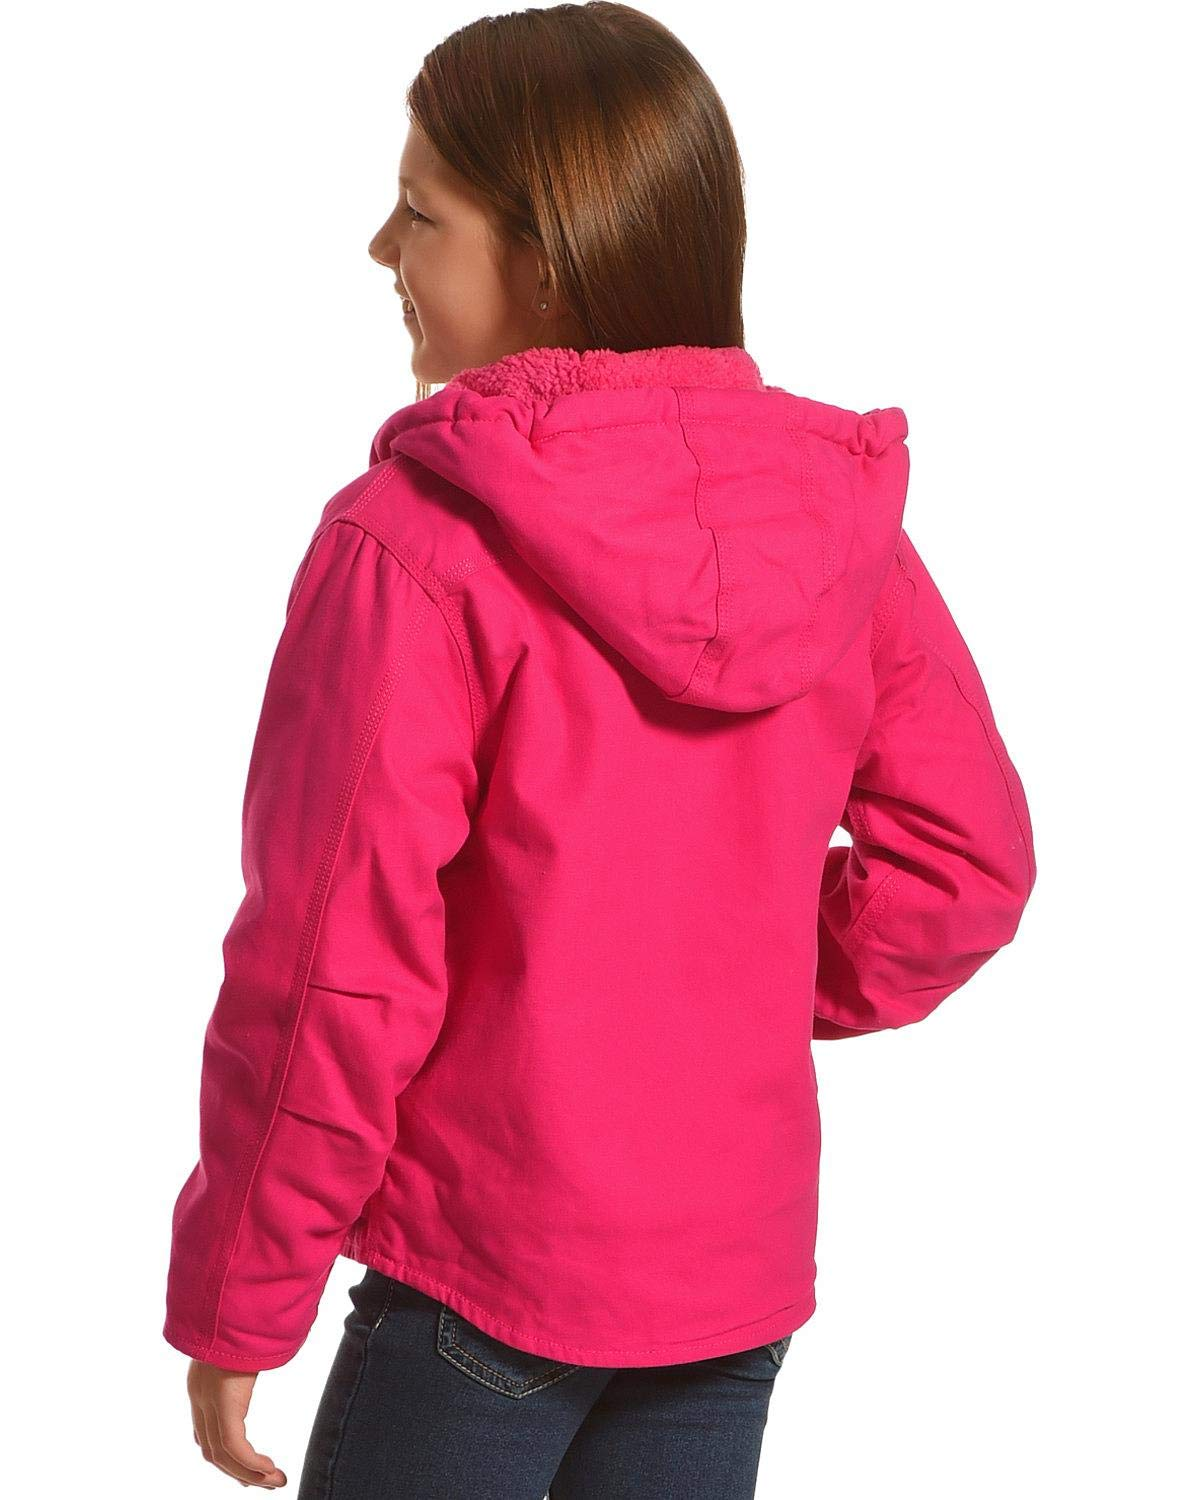 Carhartt Girls' Redwood Jacket Sherpa Lined